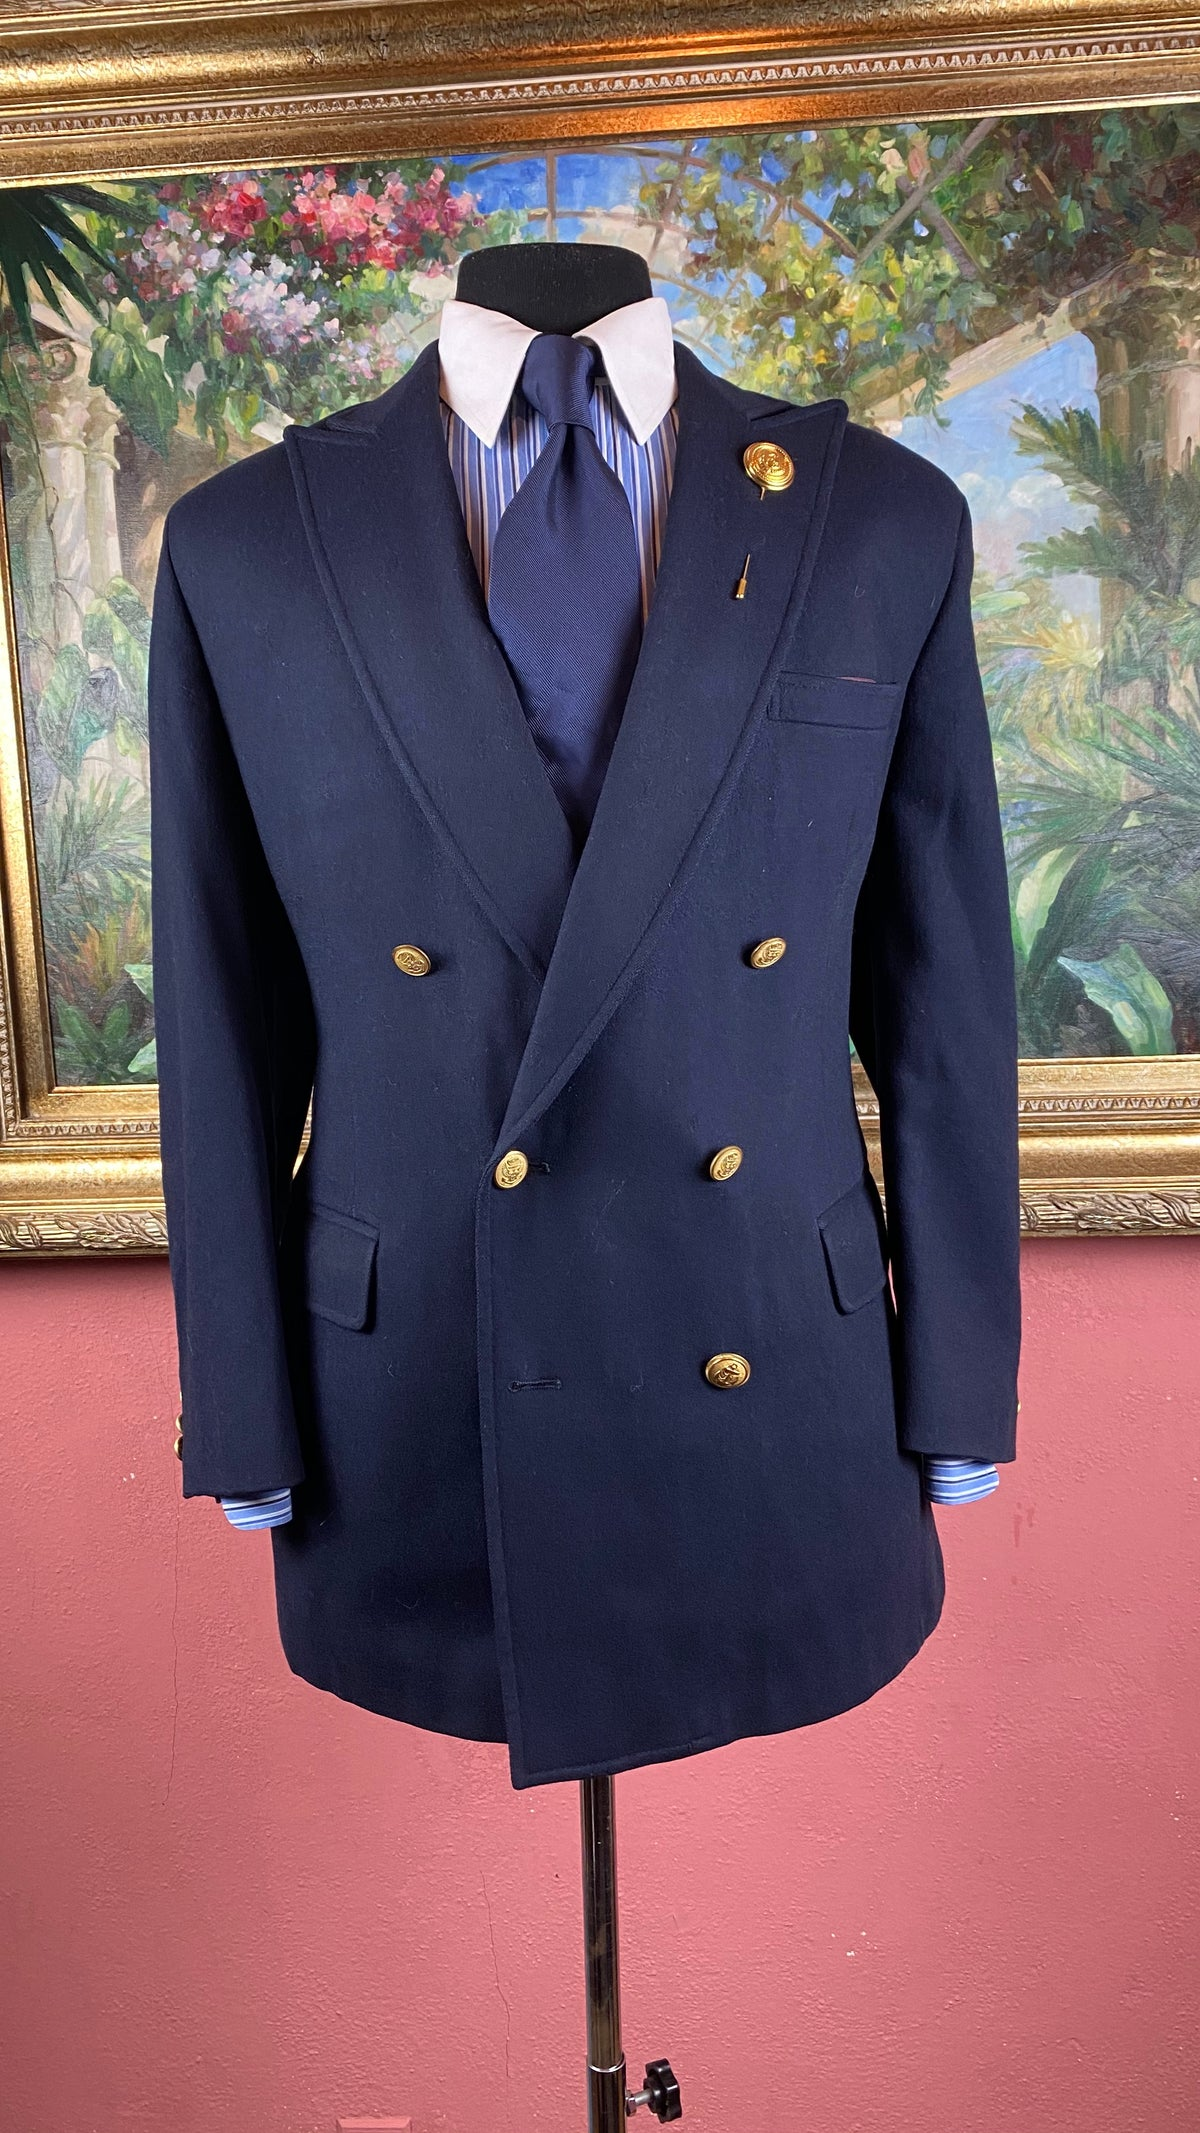 Image of VTG Navy Double Breasted Blazer